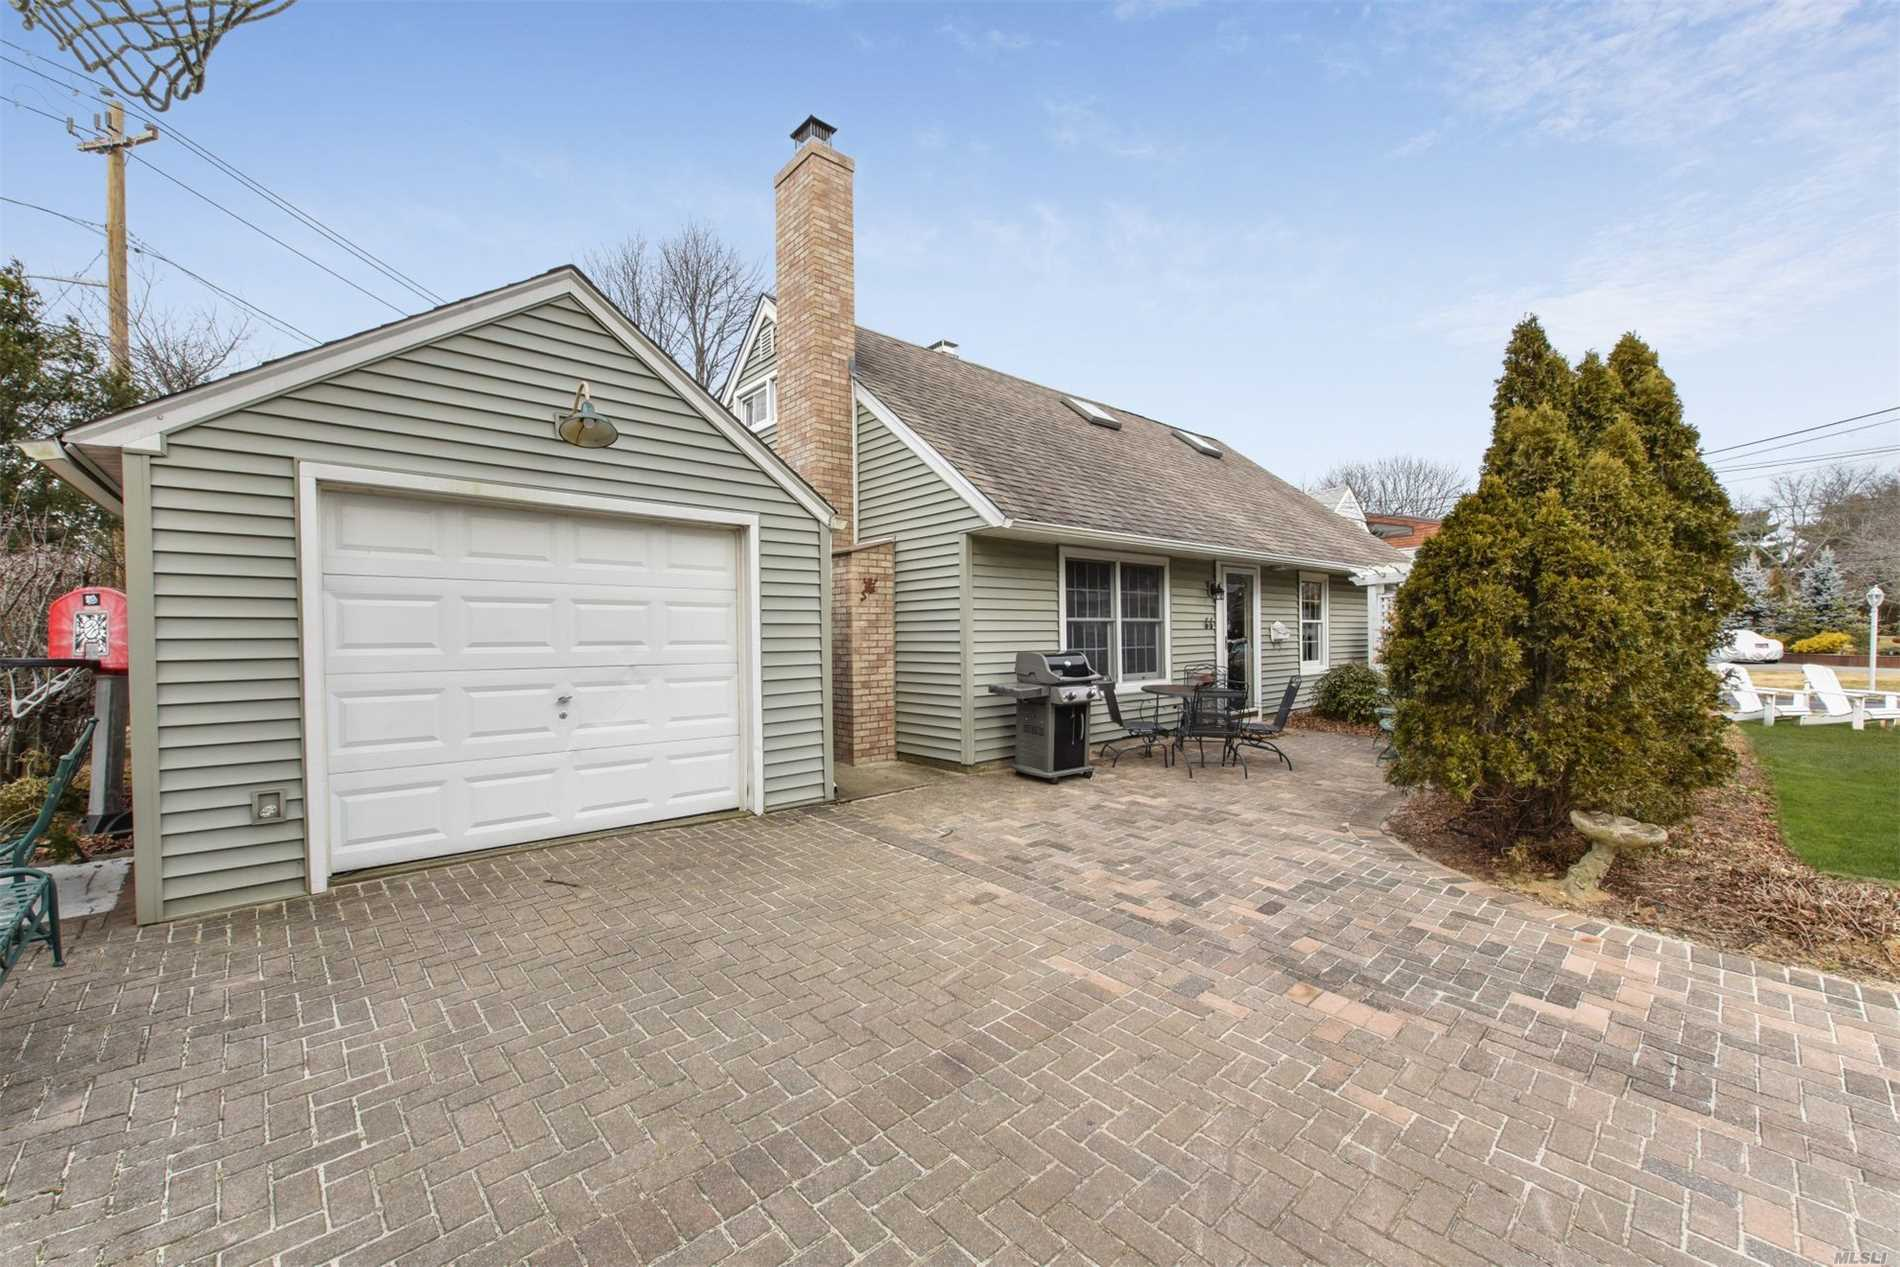 Clean & Meticulous Cape Located In Merrick. This Homes Features Cac, Living Room W/New Carpeting, Crown Molding & Wood Burning Fireplace, Eik, Formal Dining Room W/Hardwood Floors, 3 Bedrooms, 2 Full Baths, 1.5 Car Garage, Low Taxes. Close To Schools, Shopping, Walk To Railroad.